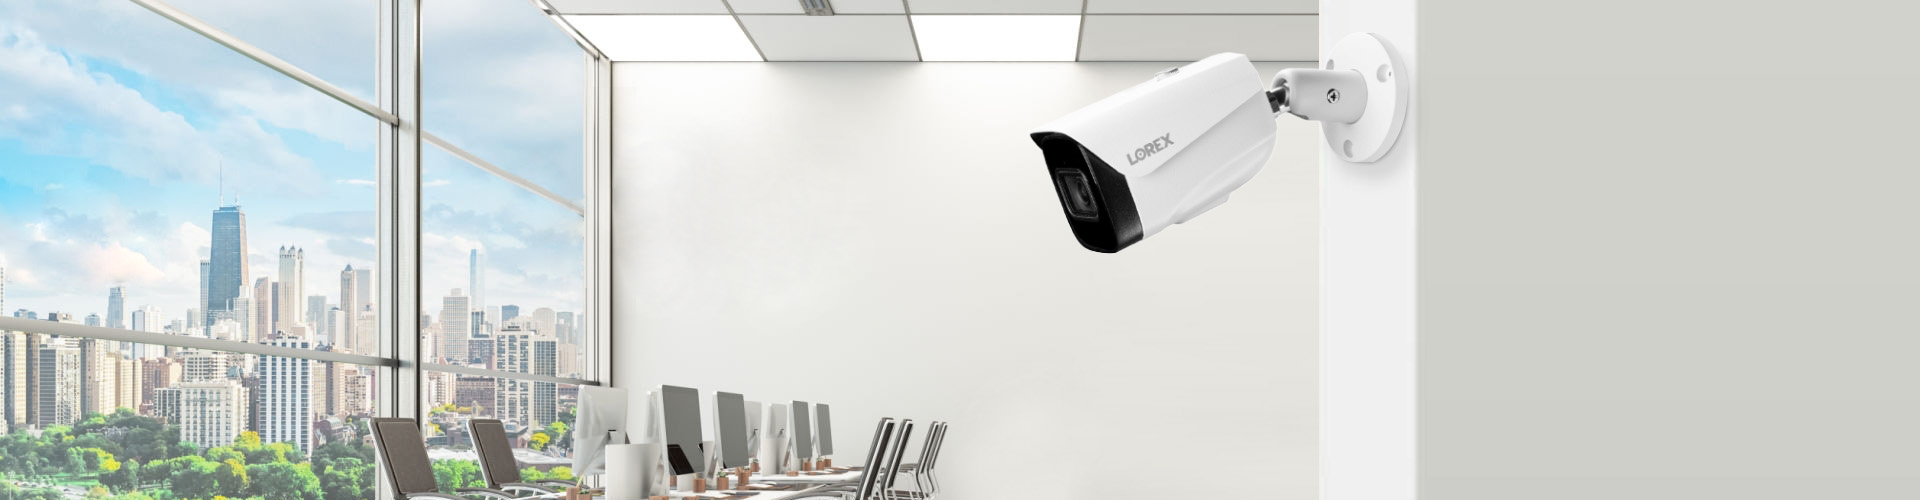 Lorex Business and Commerical Security Solutions